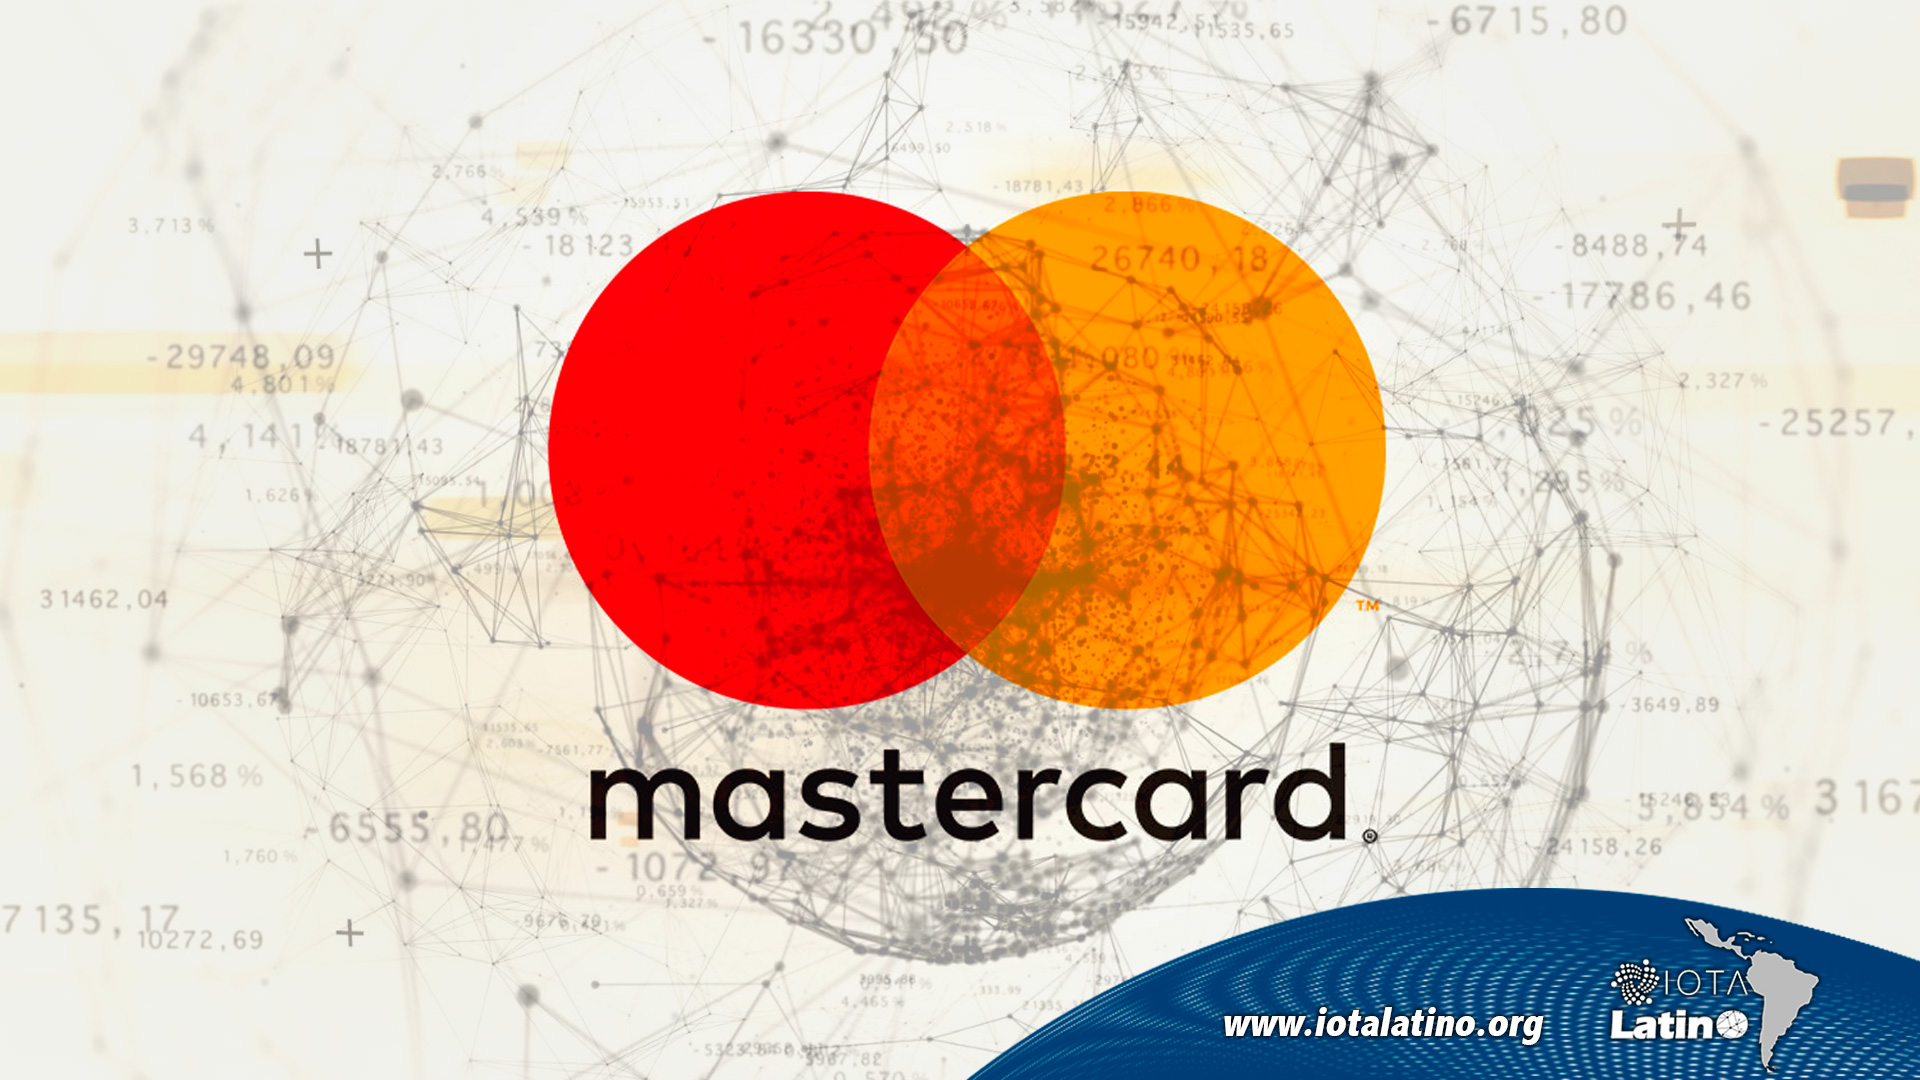 Mastercard usa la Tangle - IOTA Latino